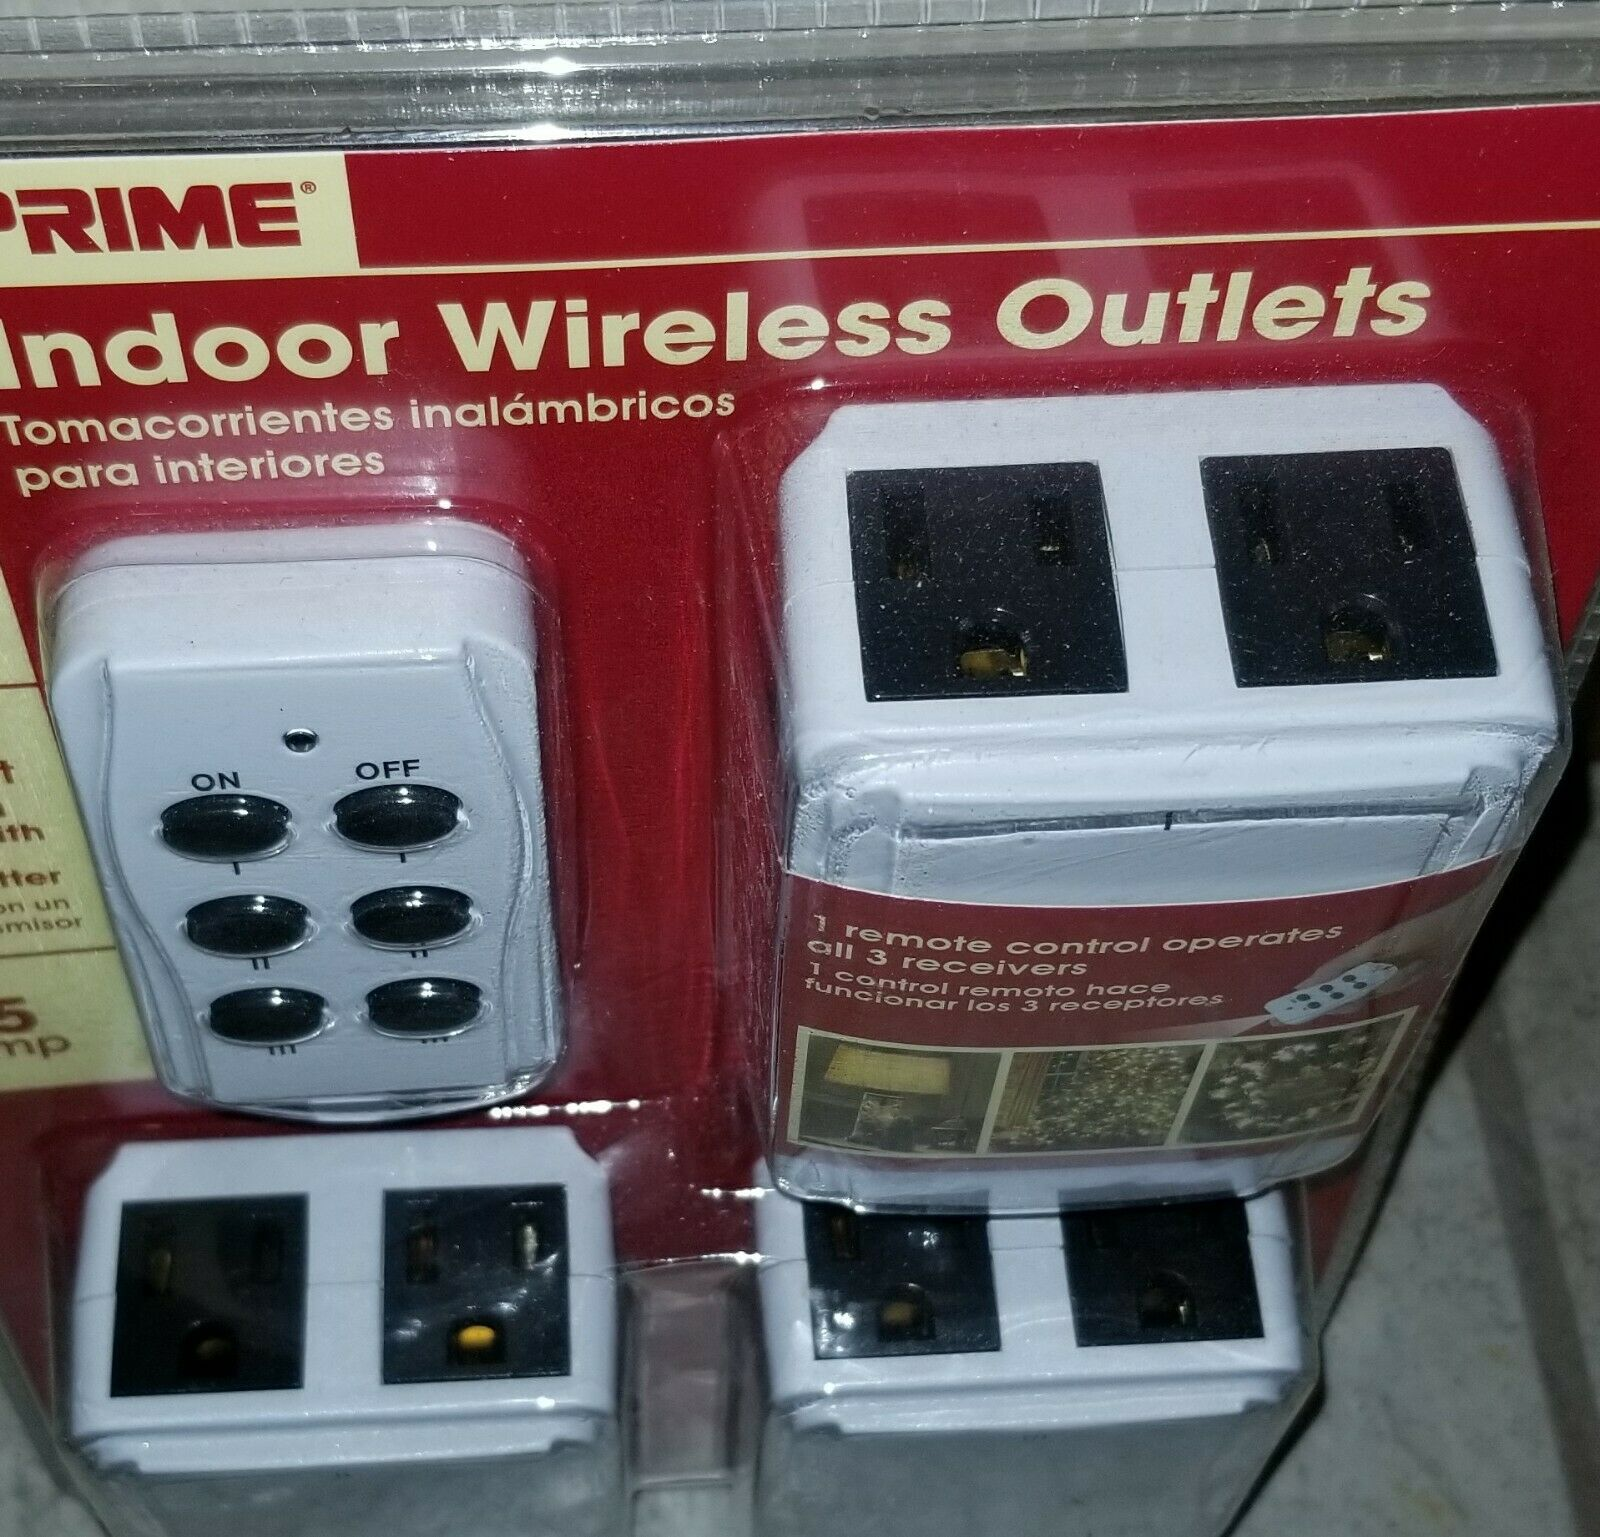 PRIME Indoor Wireless Outlets HLRC23PK Remote Christmas Light Switch Outlets